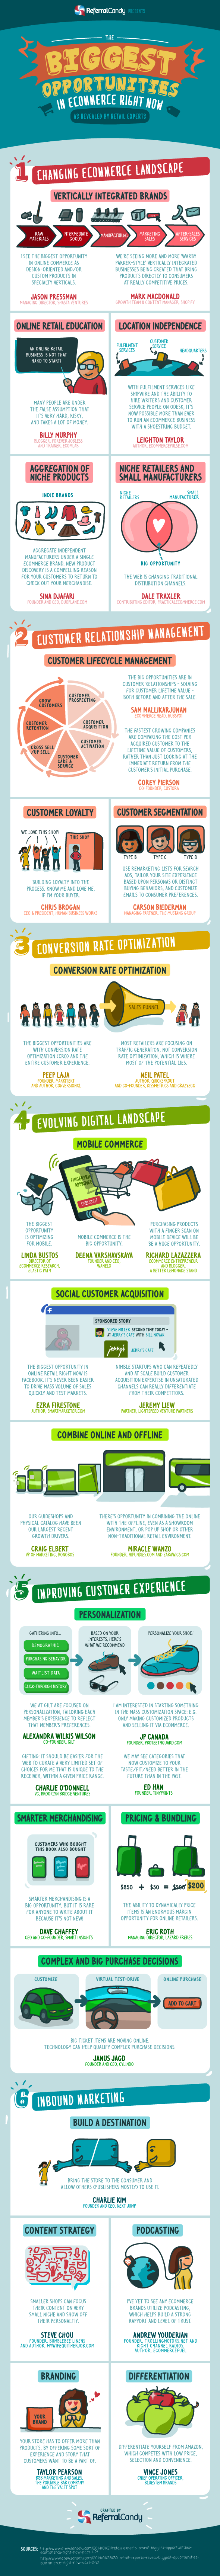 The Biggest Opportunities in Ecommerce right now, as revealed by Retail Experts [Infographic]